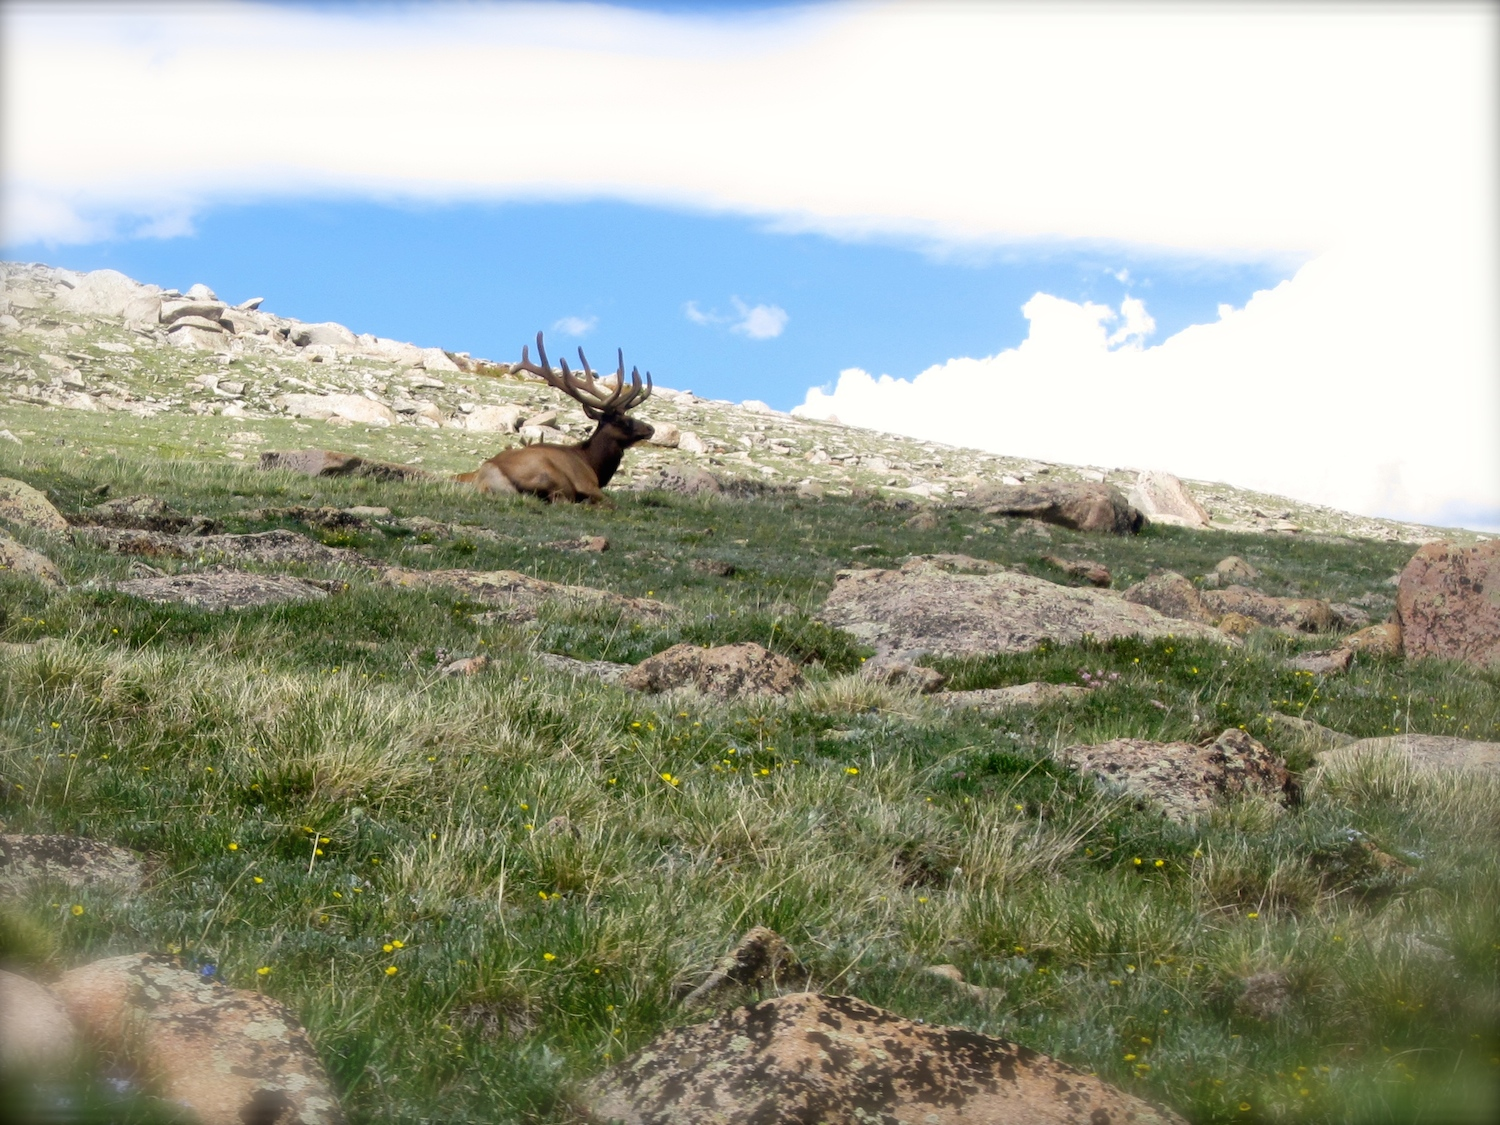 This handsome bull elk likes his own space. We saw hundreds of elk - Moms, Dads and babies as well as two beautiful moose.